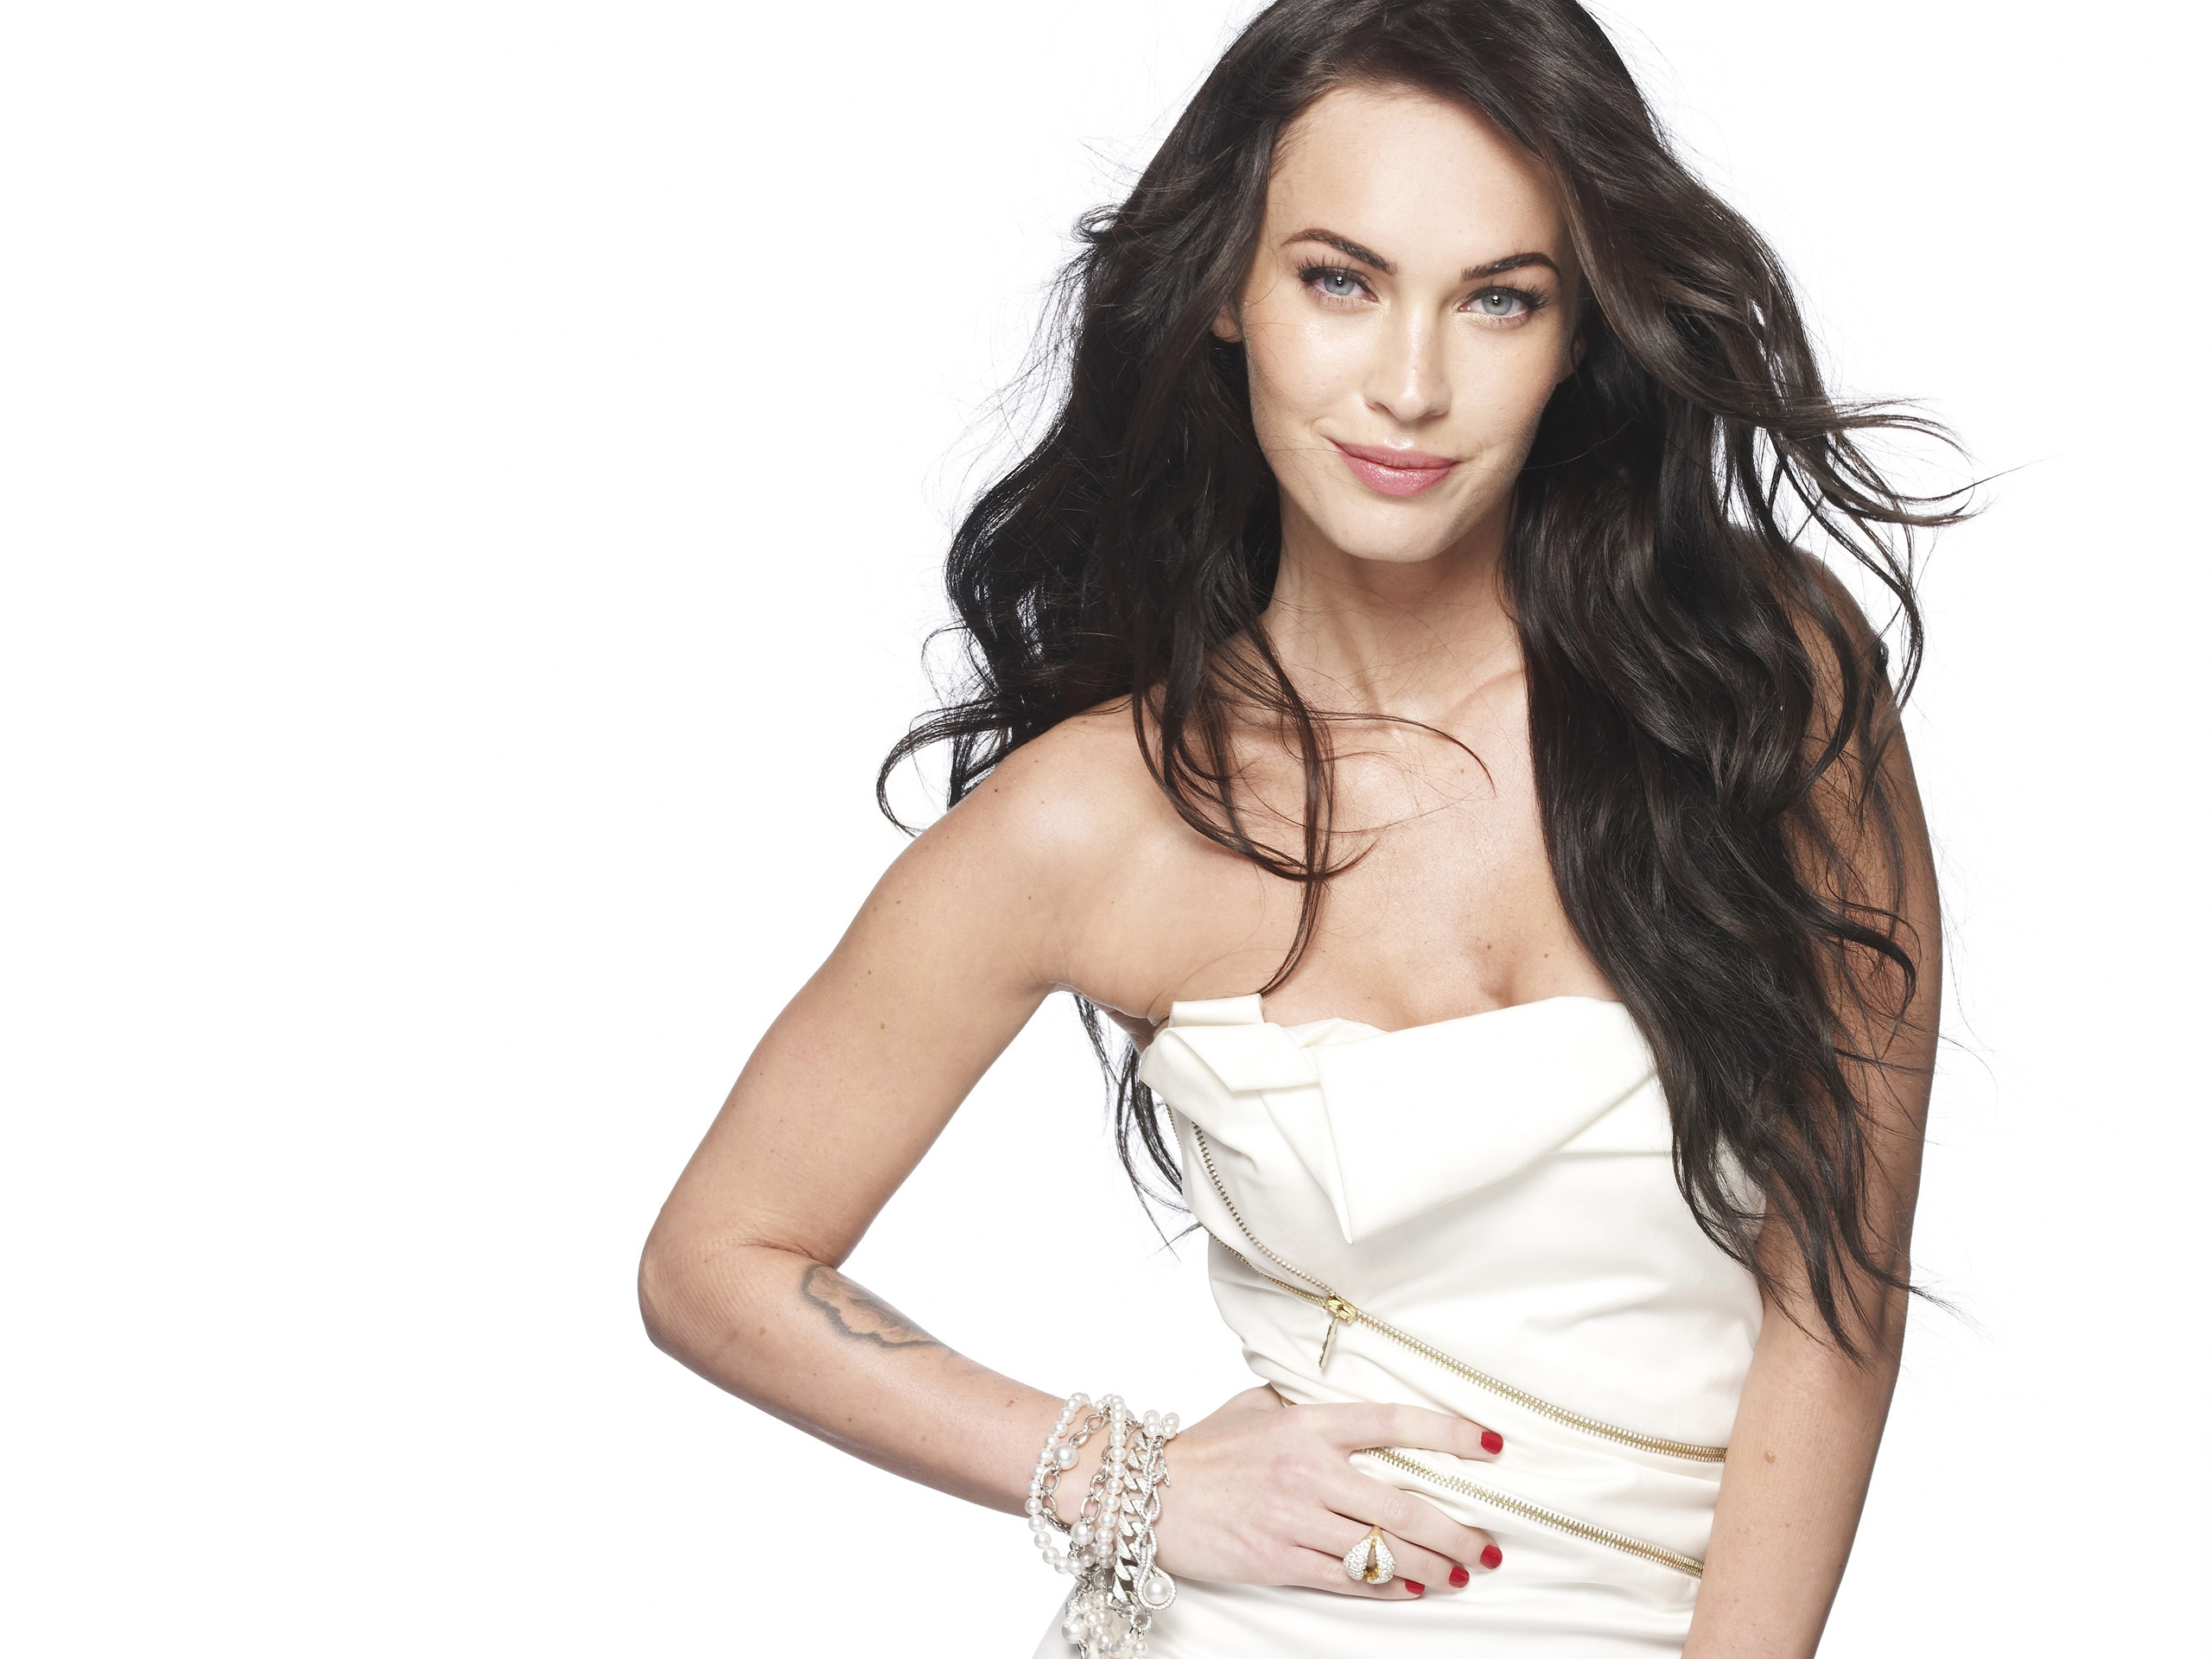 click to free download the wallpaper--Free TV & Movies Picture - Megan Fox Post in Pixel of 2560x1920, Girl in Curly Black Hair and White Dress, She is Sweet Princess 2560X1920 free wallpaper download